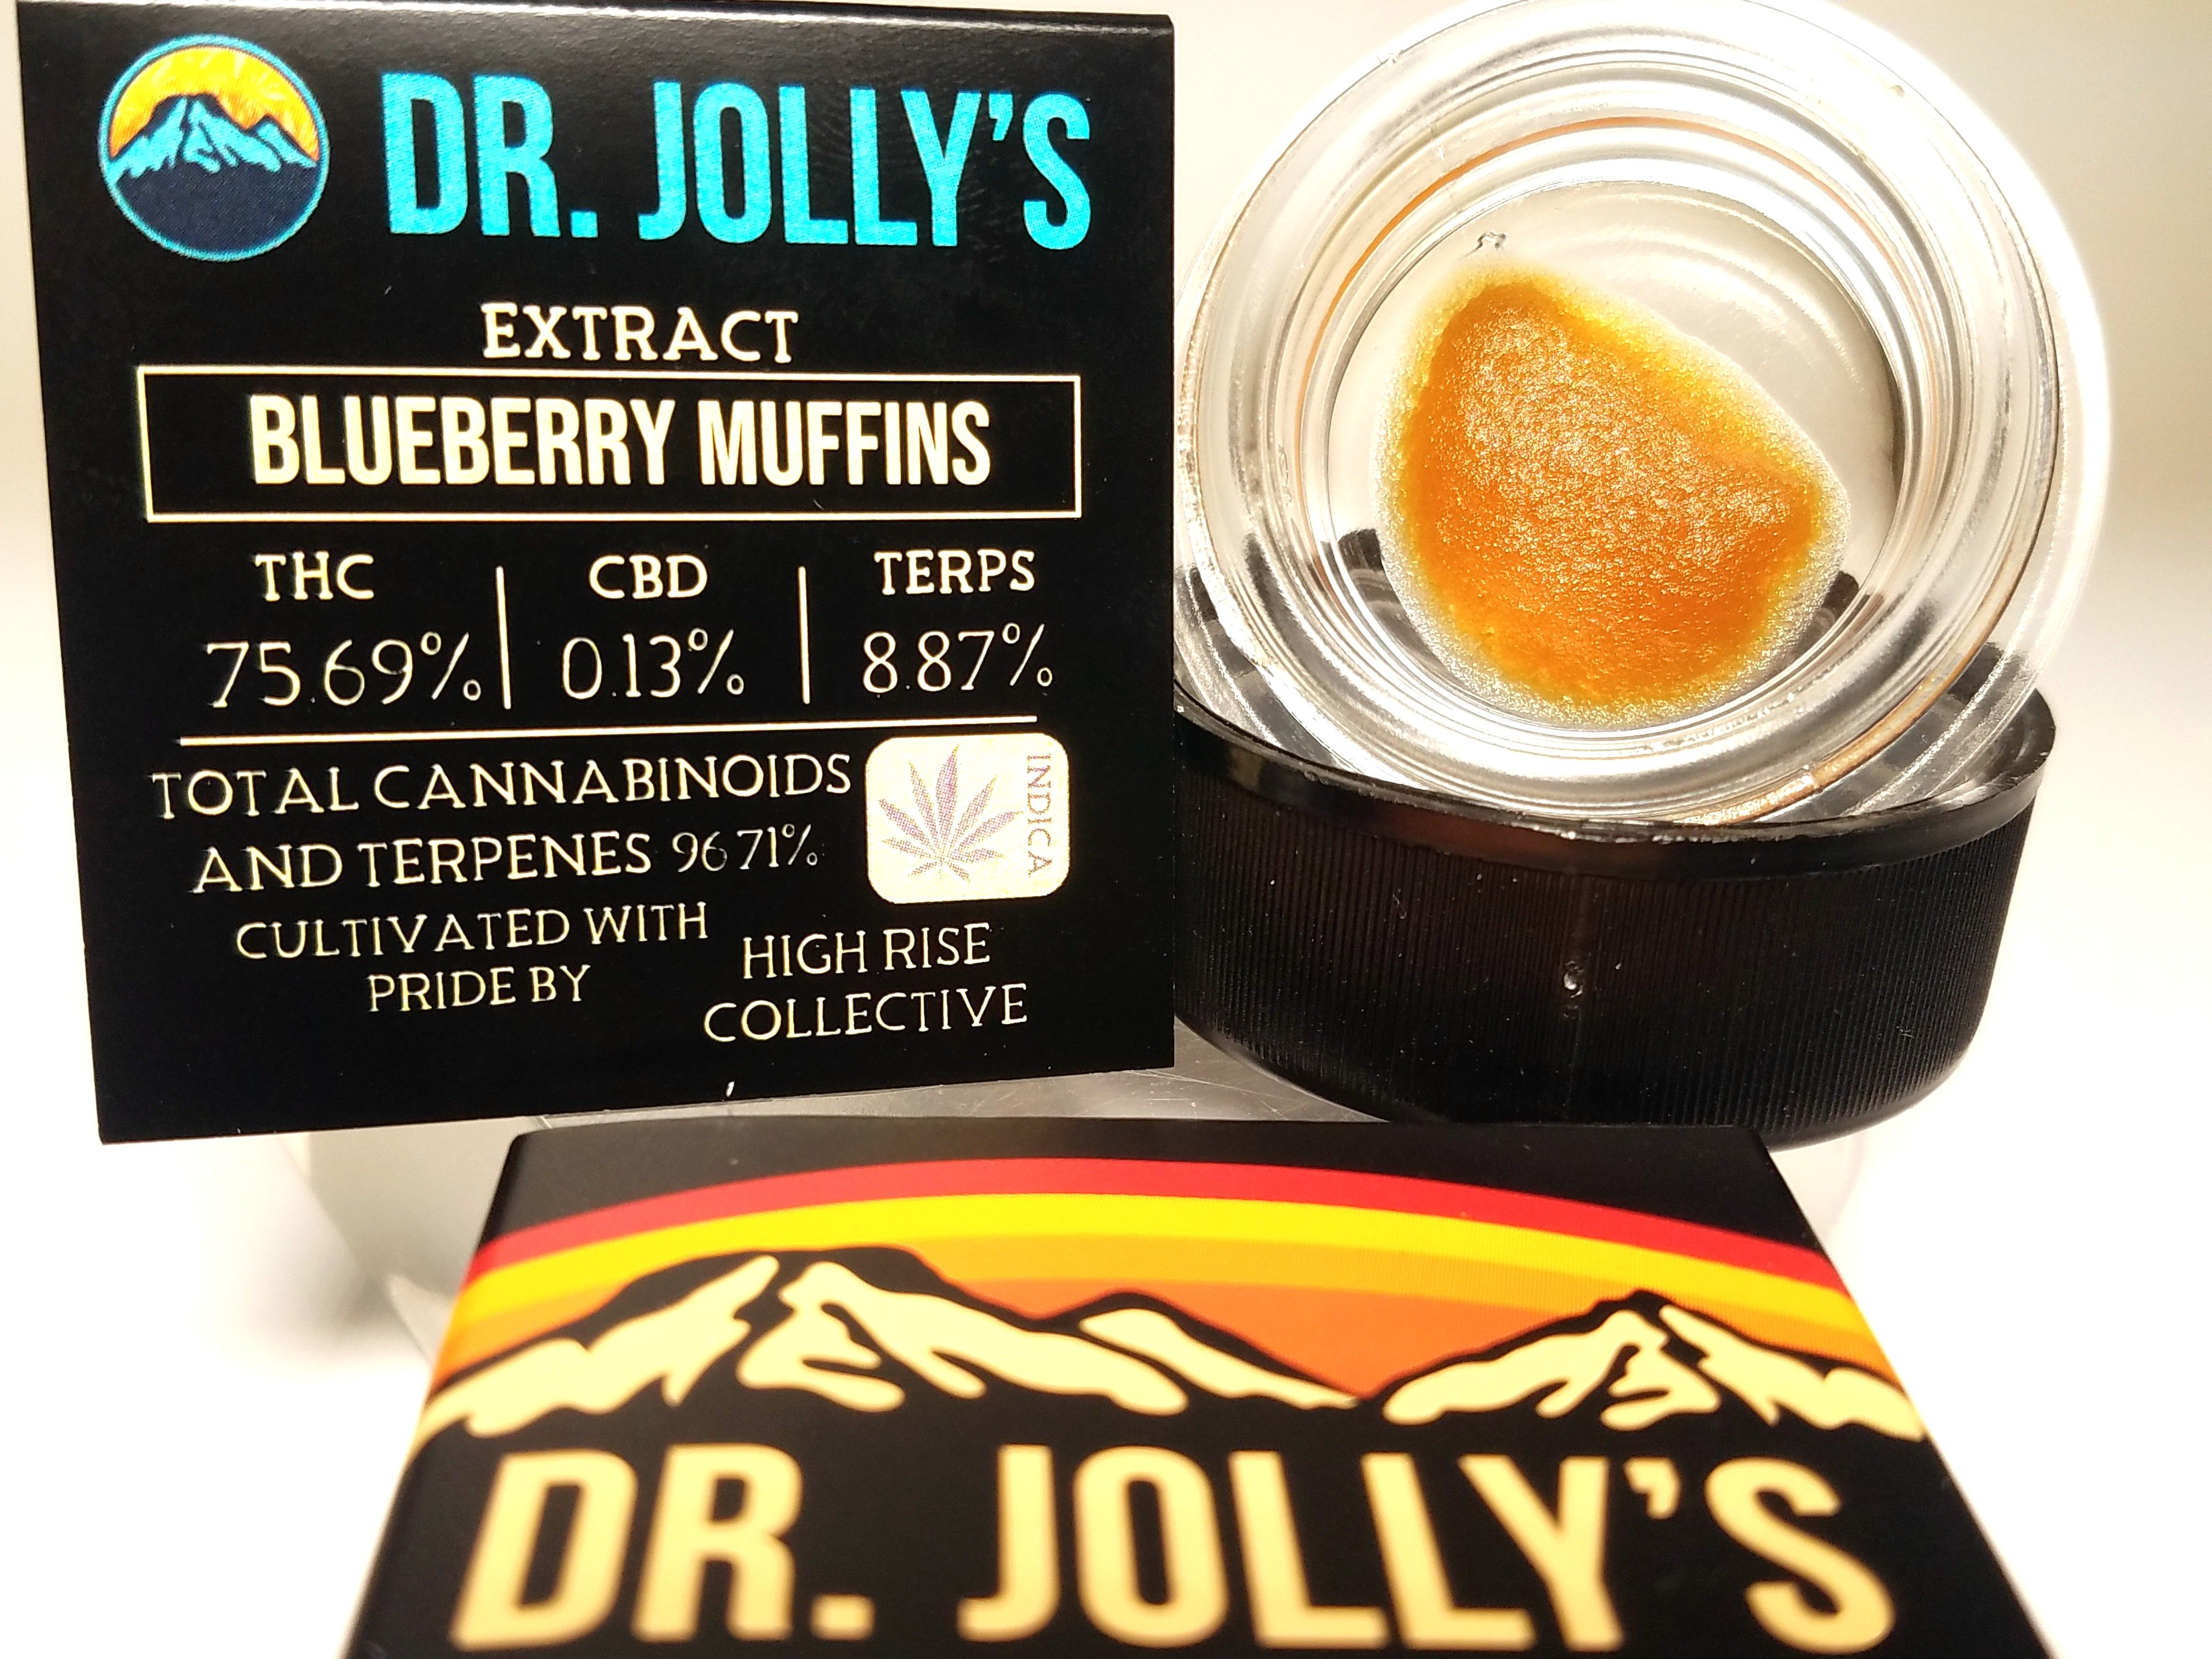 Dr. Jolly's - Blueberry Muffins, Hybrid, Sugar Wax